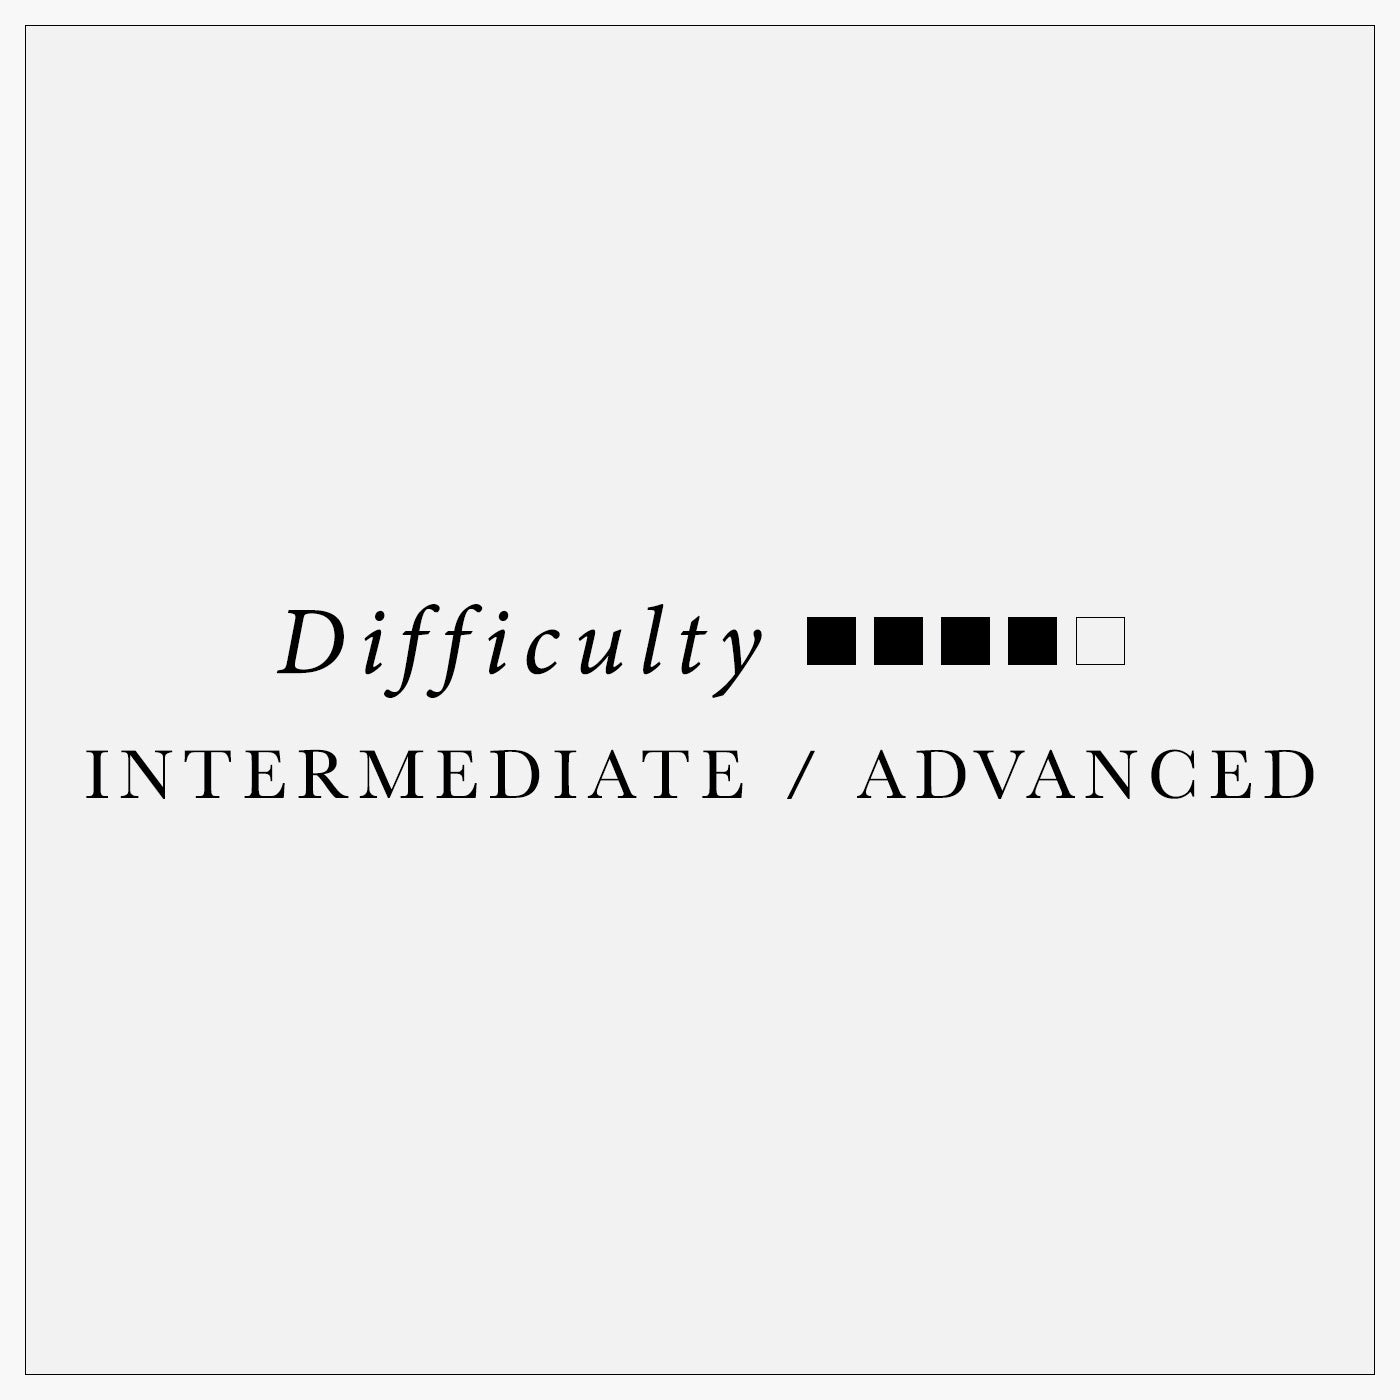 pattern difficulty: intermediate/advanced